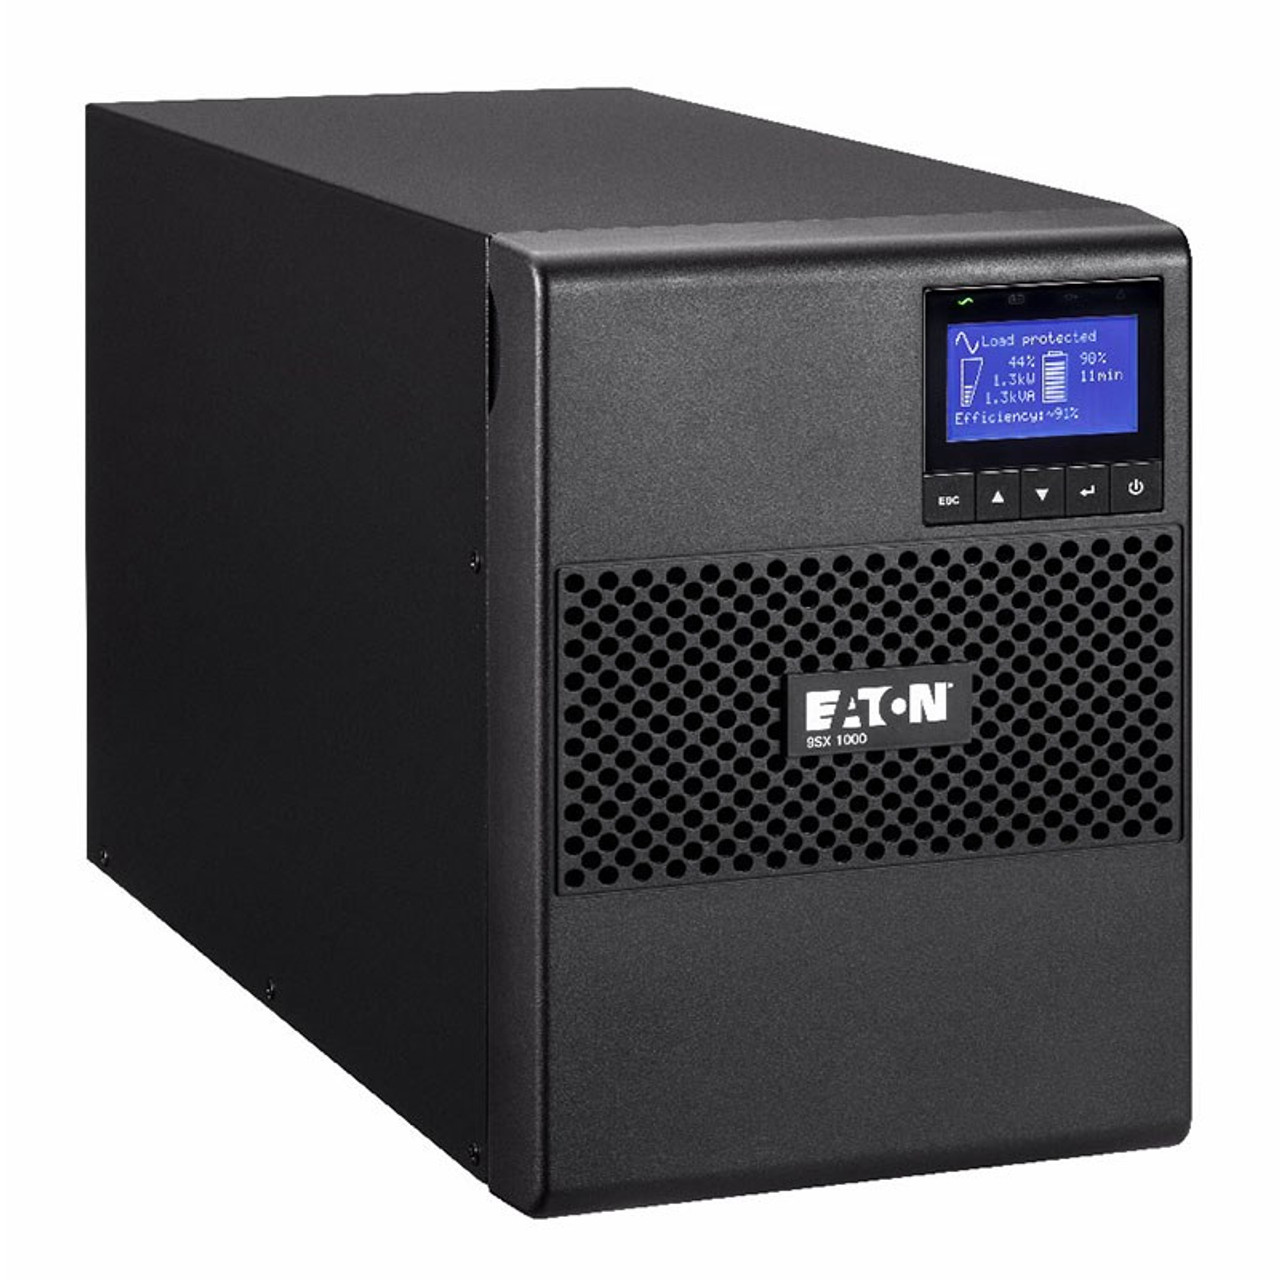 Image for Eaton 9SX 1000VA/900W On Line Tower UPS - 9SX1000I-AU CX Computer Superstore